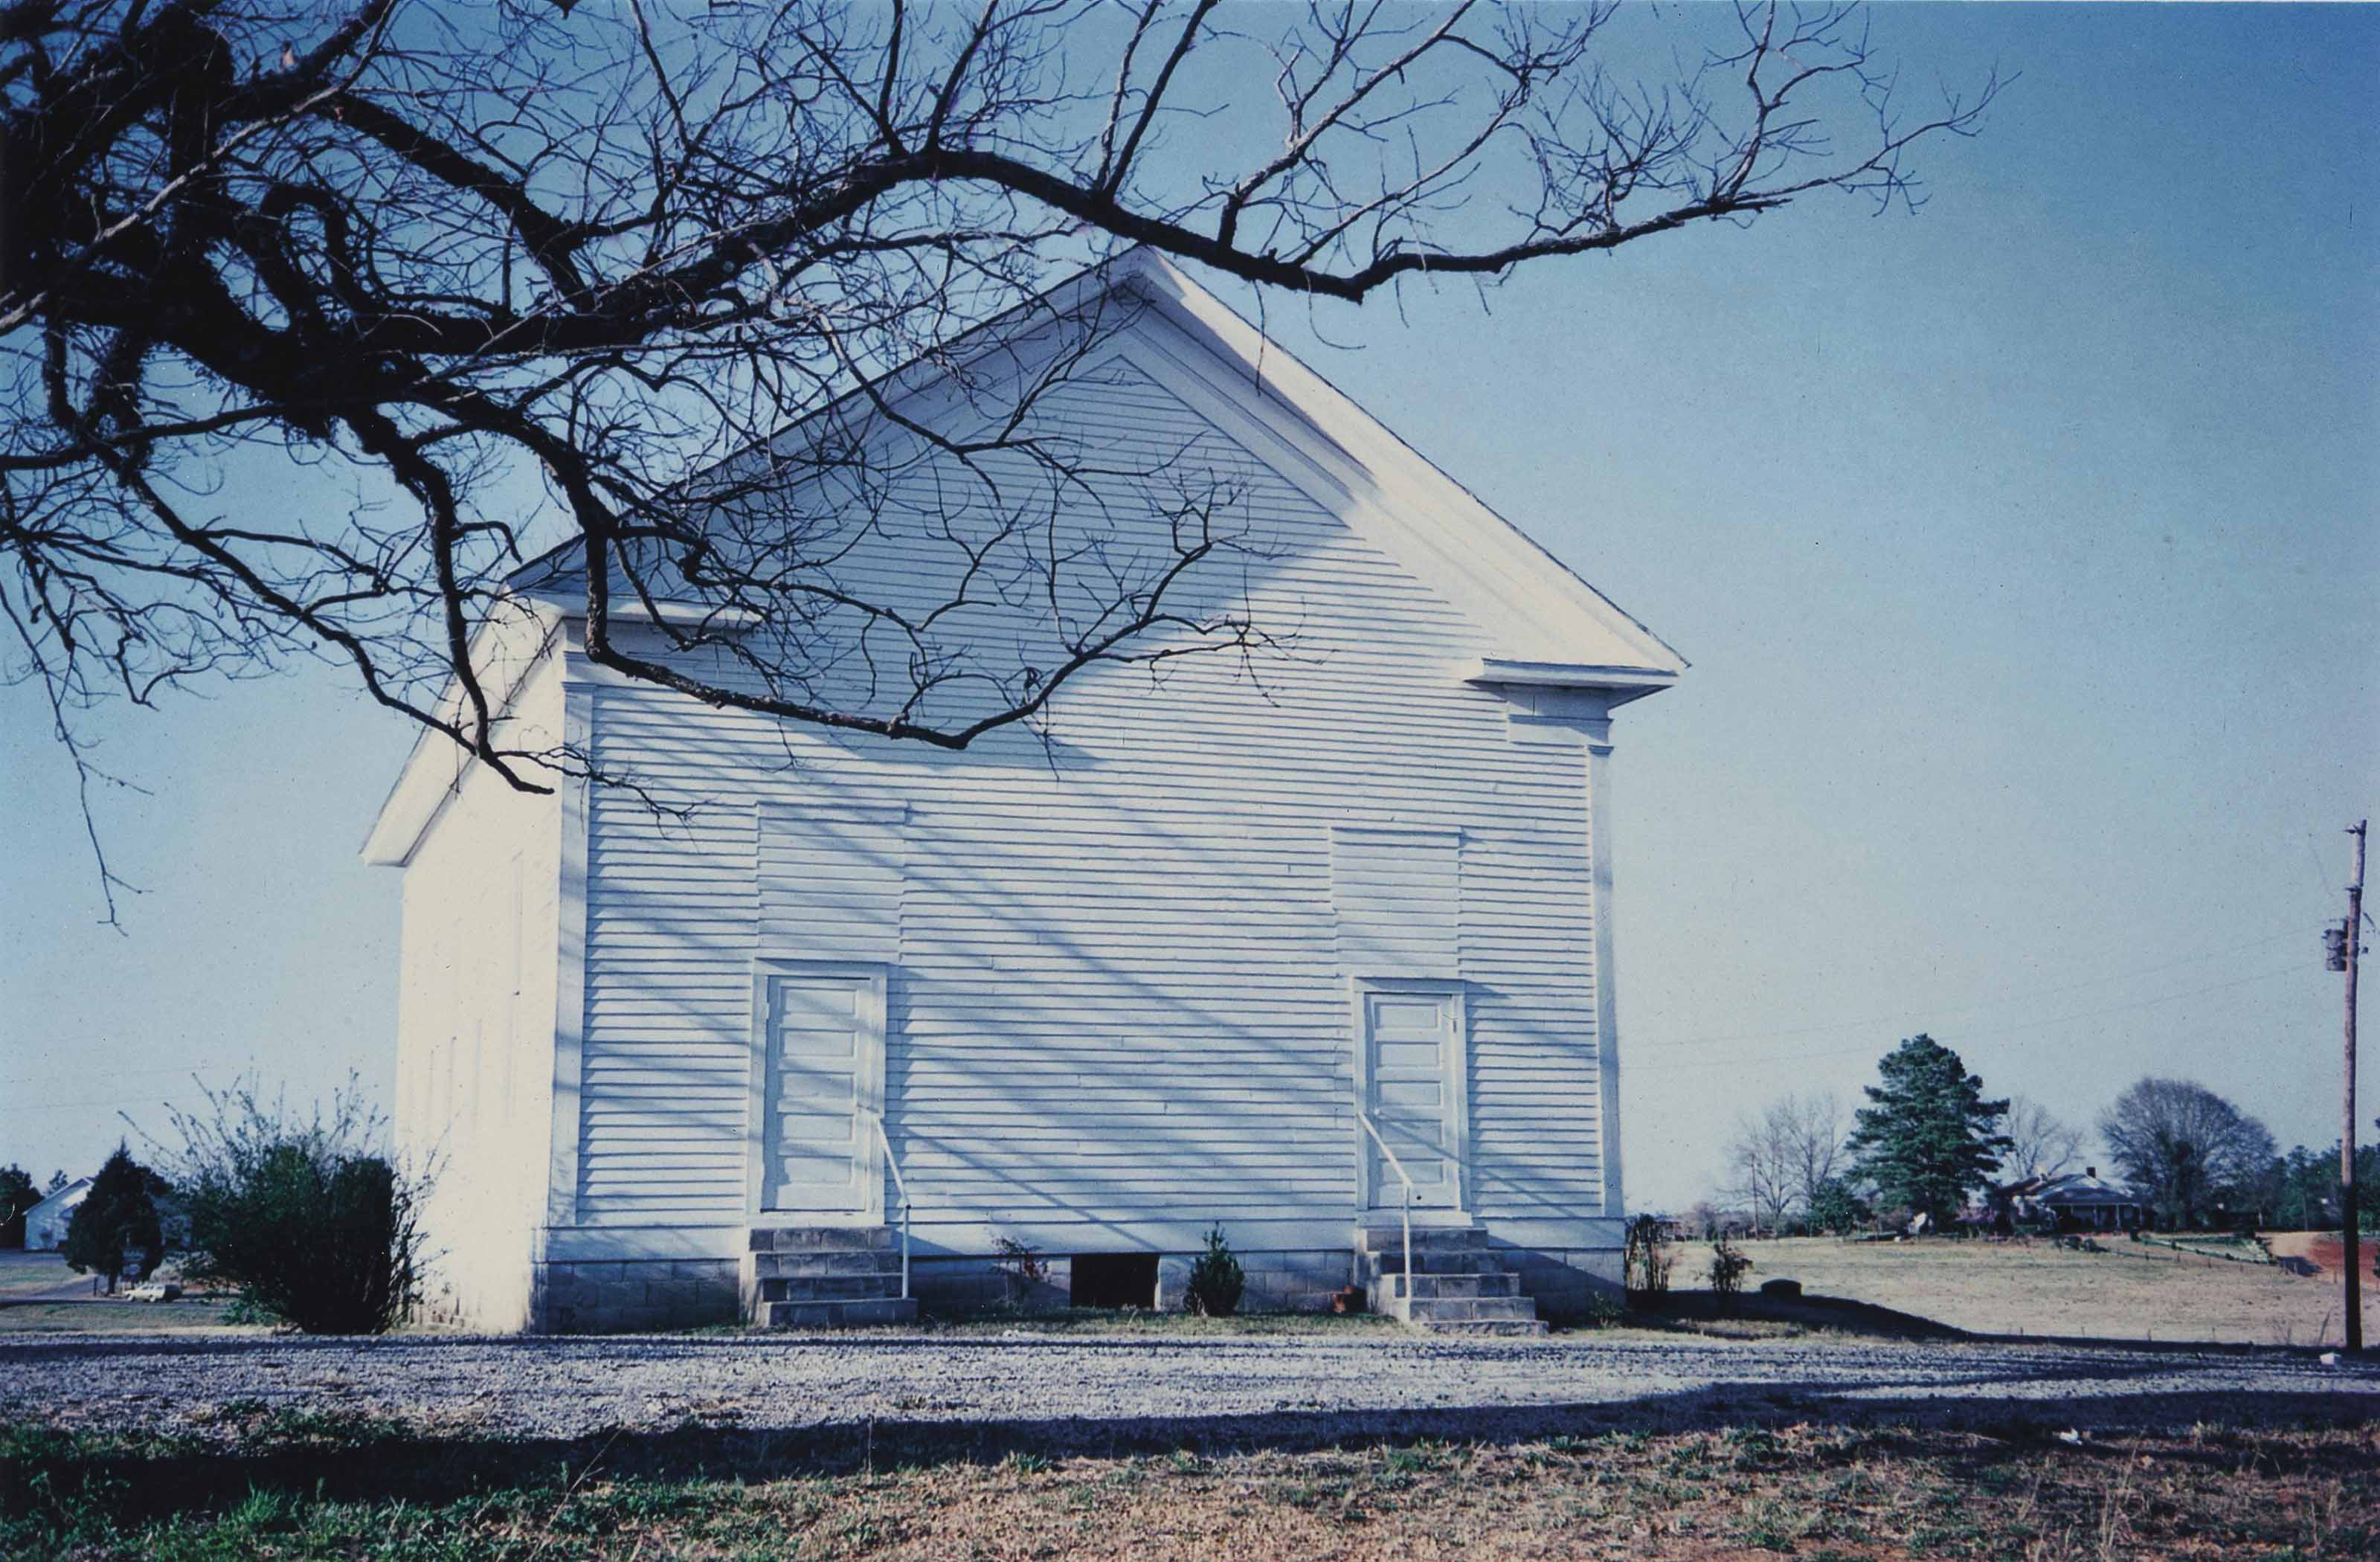 Church, Hale County, Alabama, March 1976